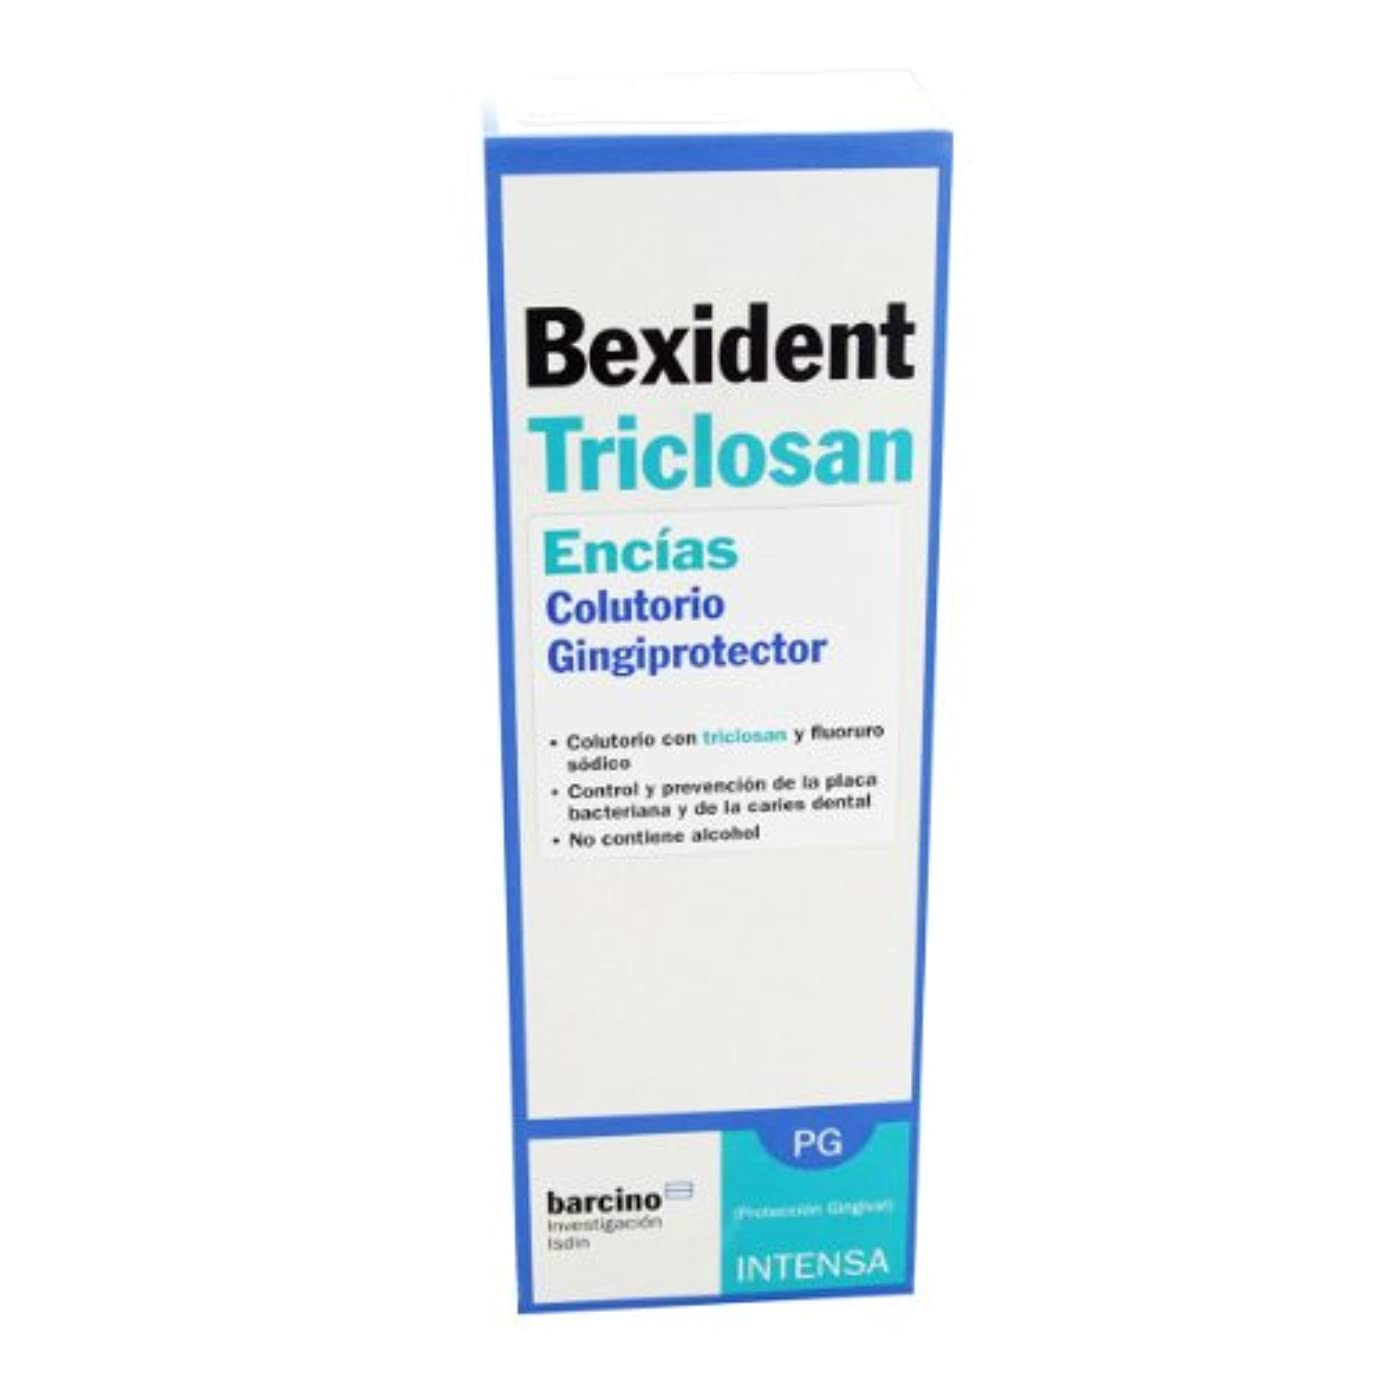 雑草意志タックルBexident Gum Maintenance Triclosan Mouthwash 250ml [並行輸入品]